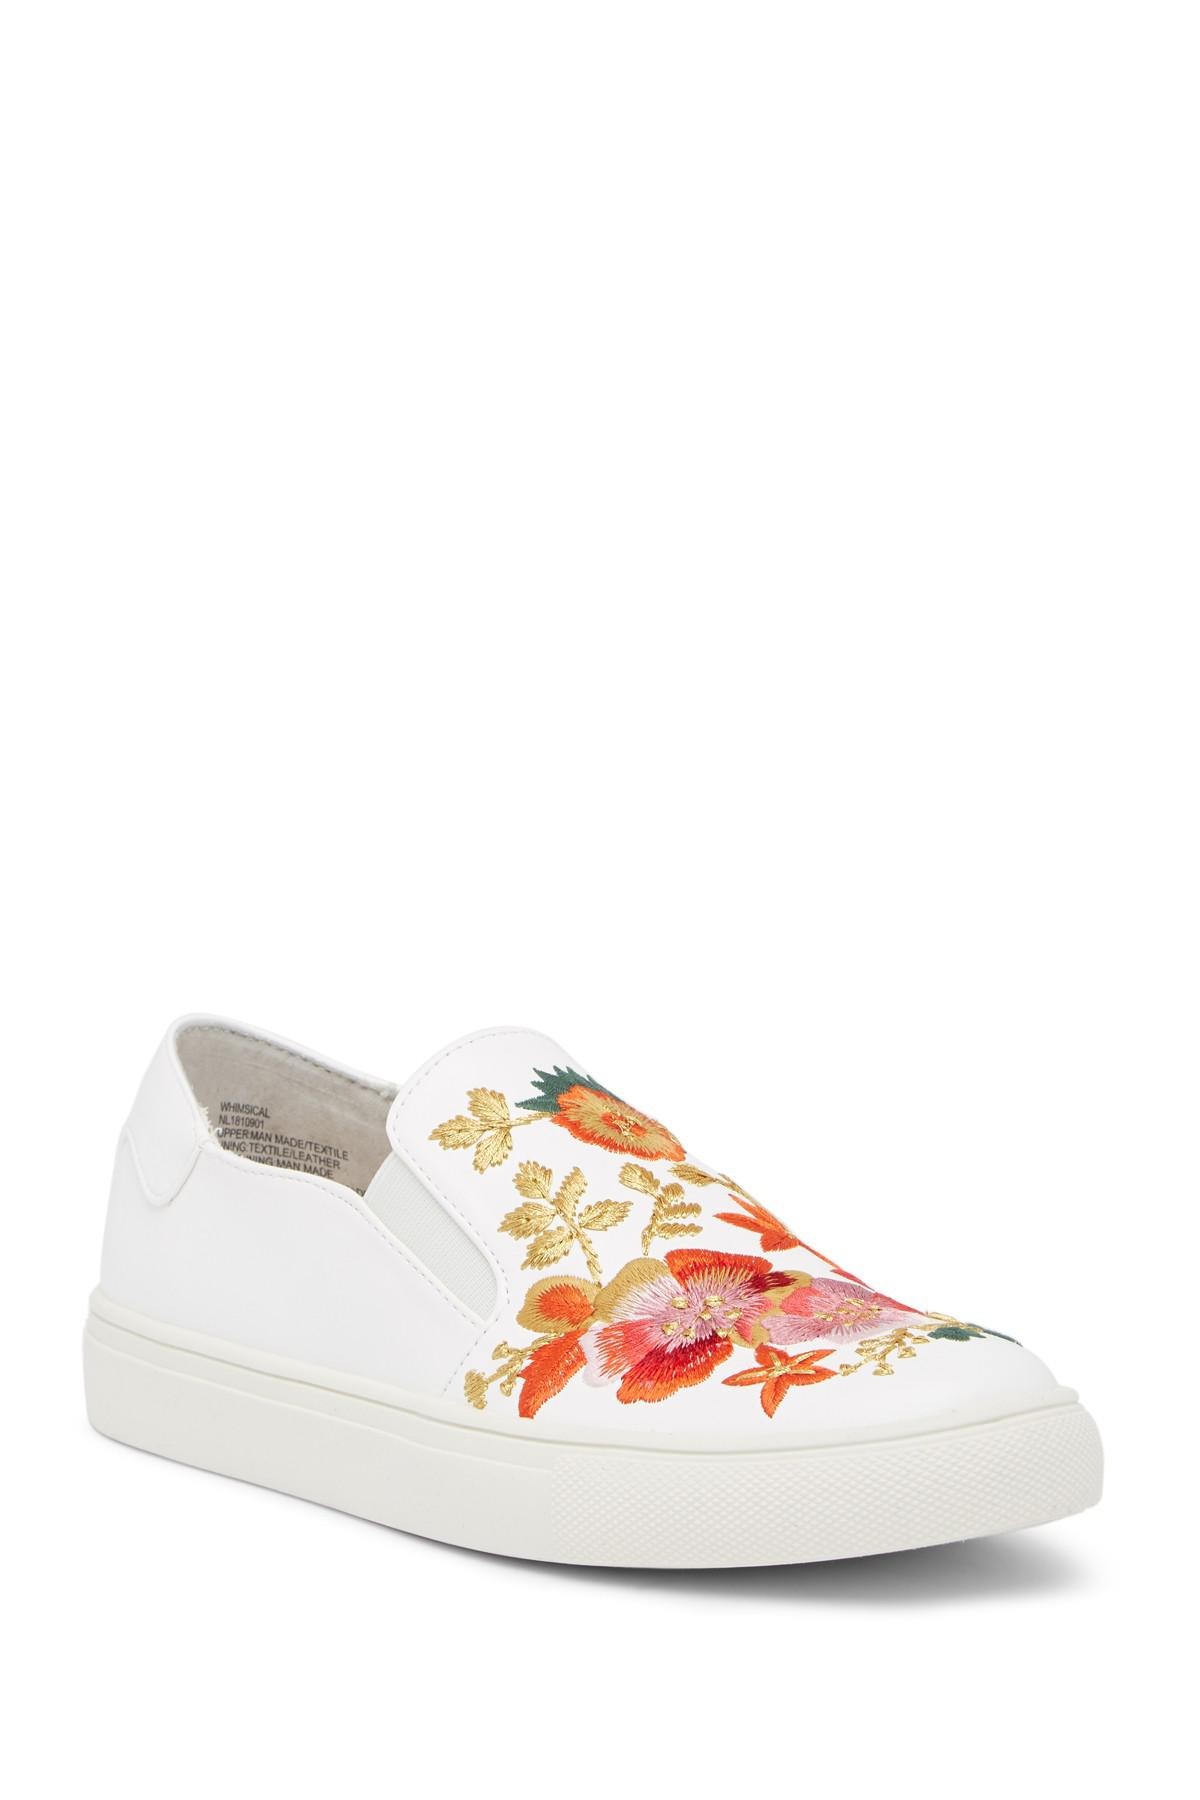 ae5fb05b6f2 Nanette Nanette Lepore Whimsical Embroidered Slip-on Sneaker in ...